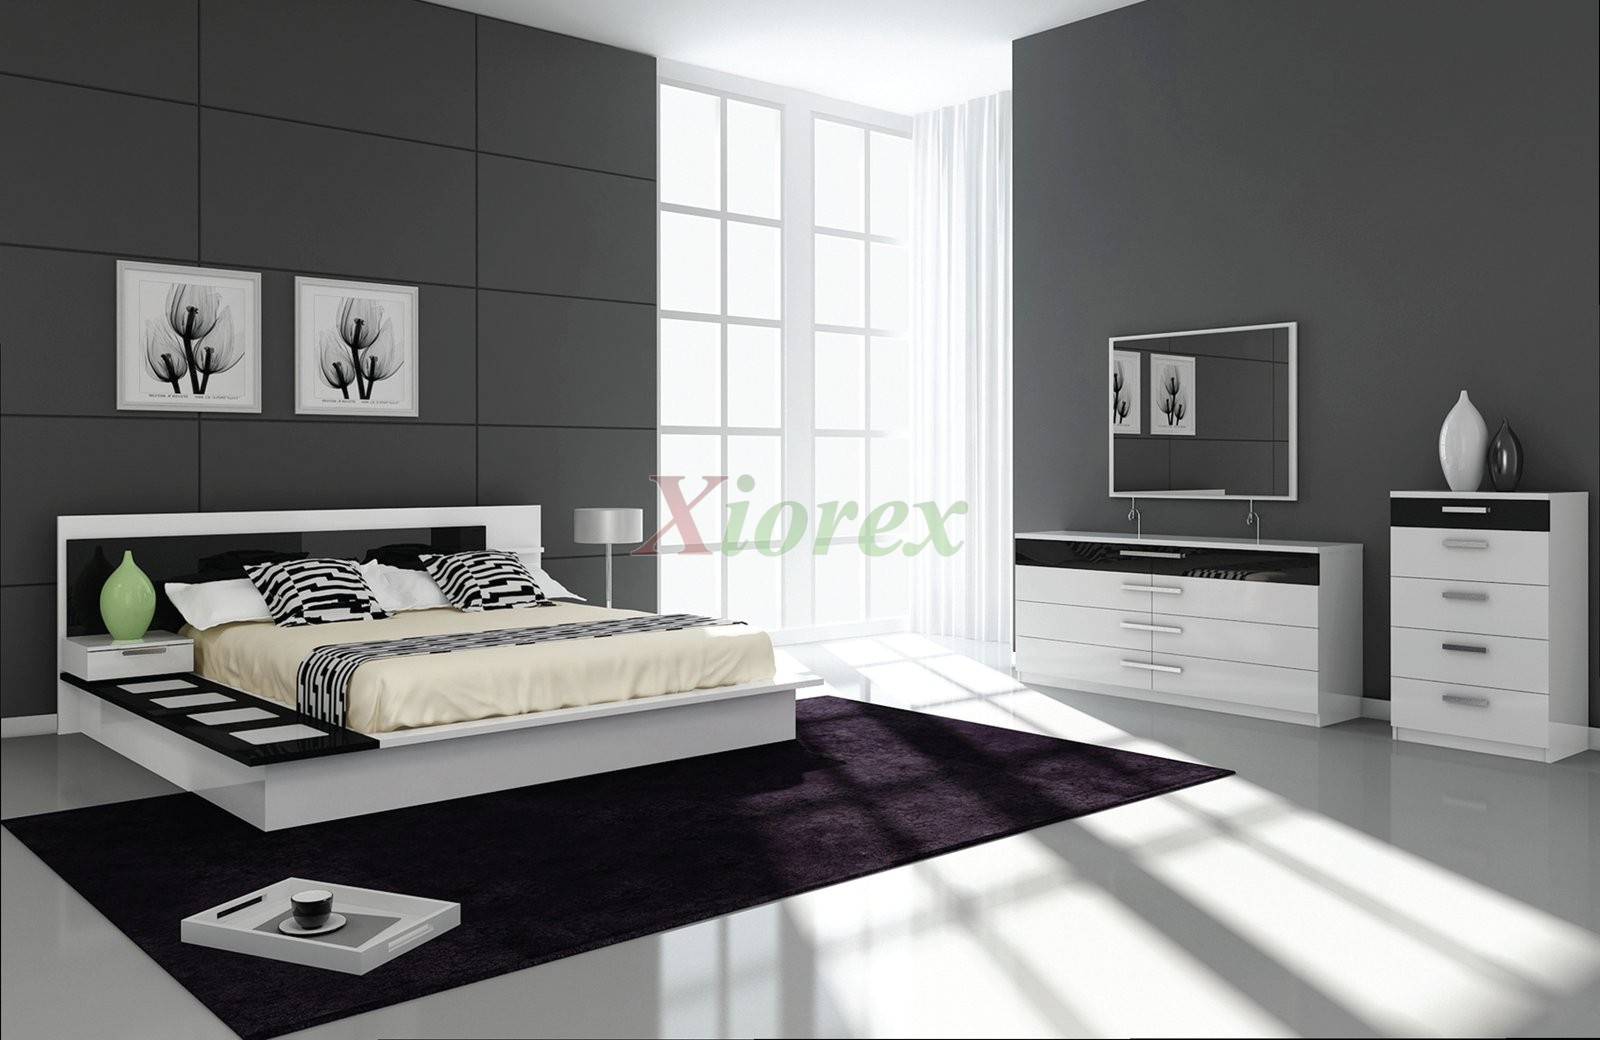 Draco black and white contemporary bedroom furniture sets for Modern black and white furniture